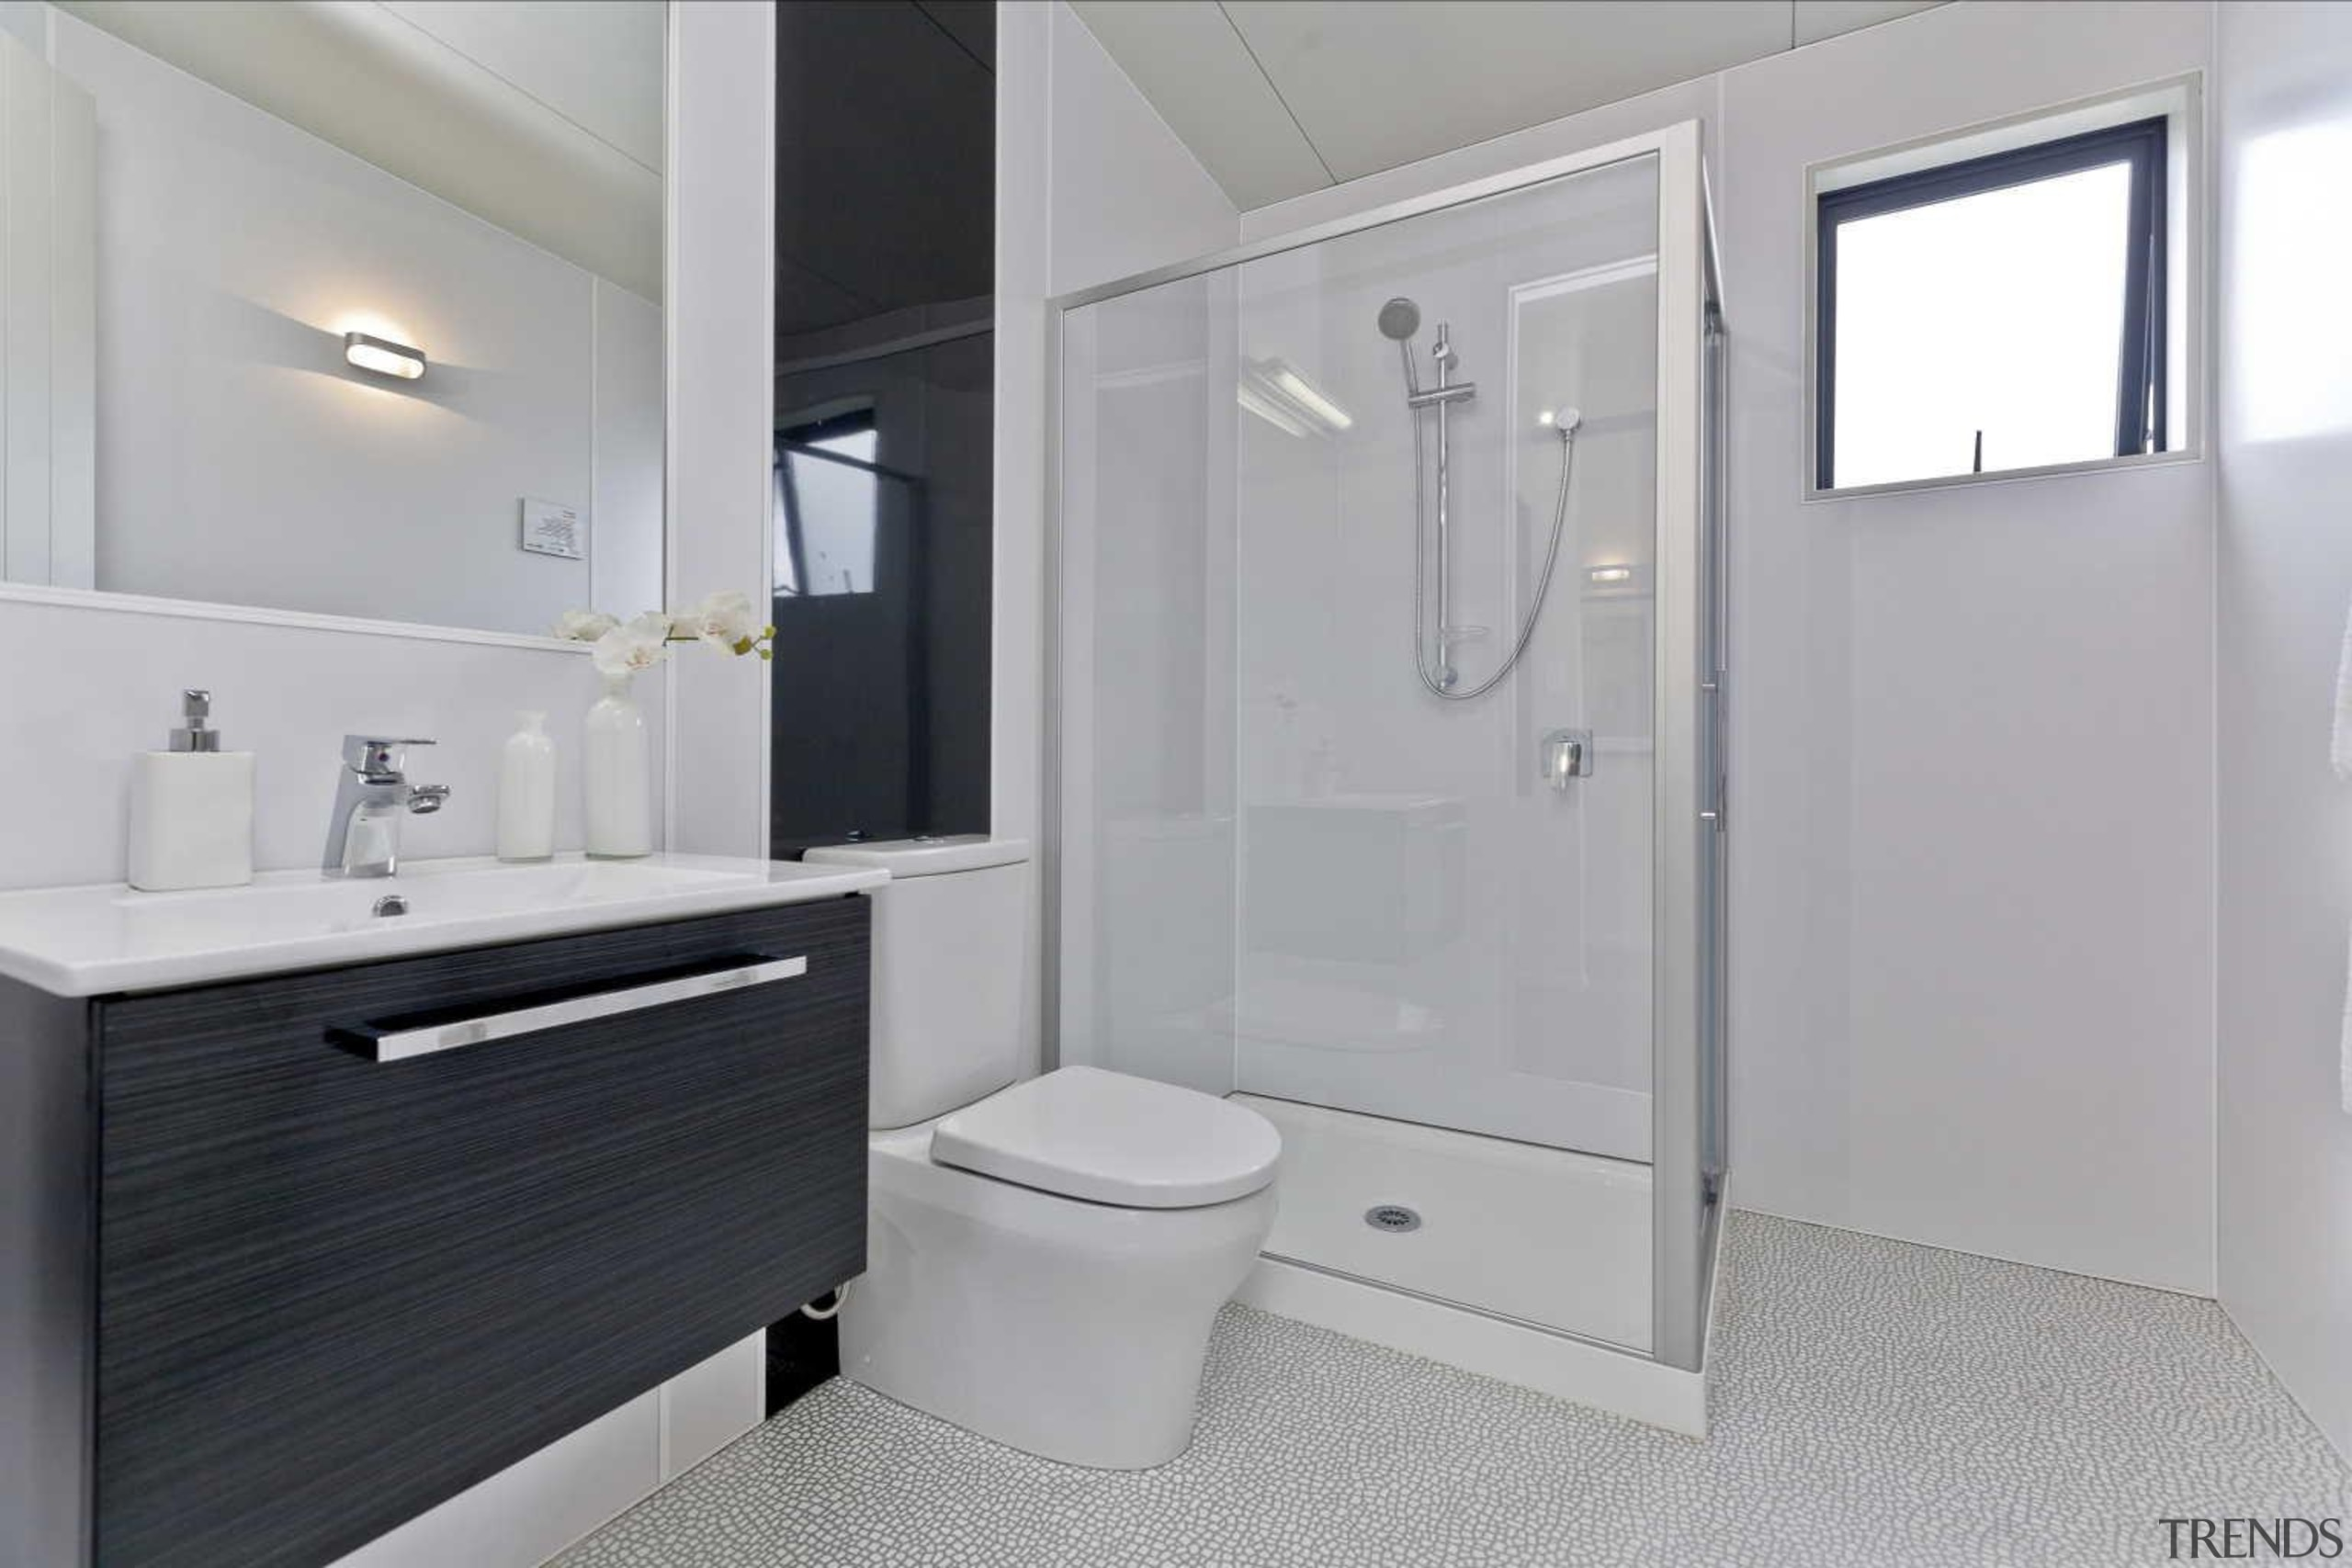 White bathroom with black accent - White Bathroom bathroom, bathroom accessory, bathroom cabinet, property, real estate, room, gray